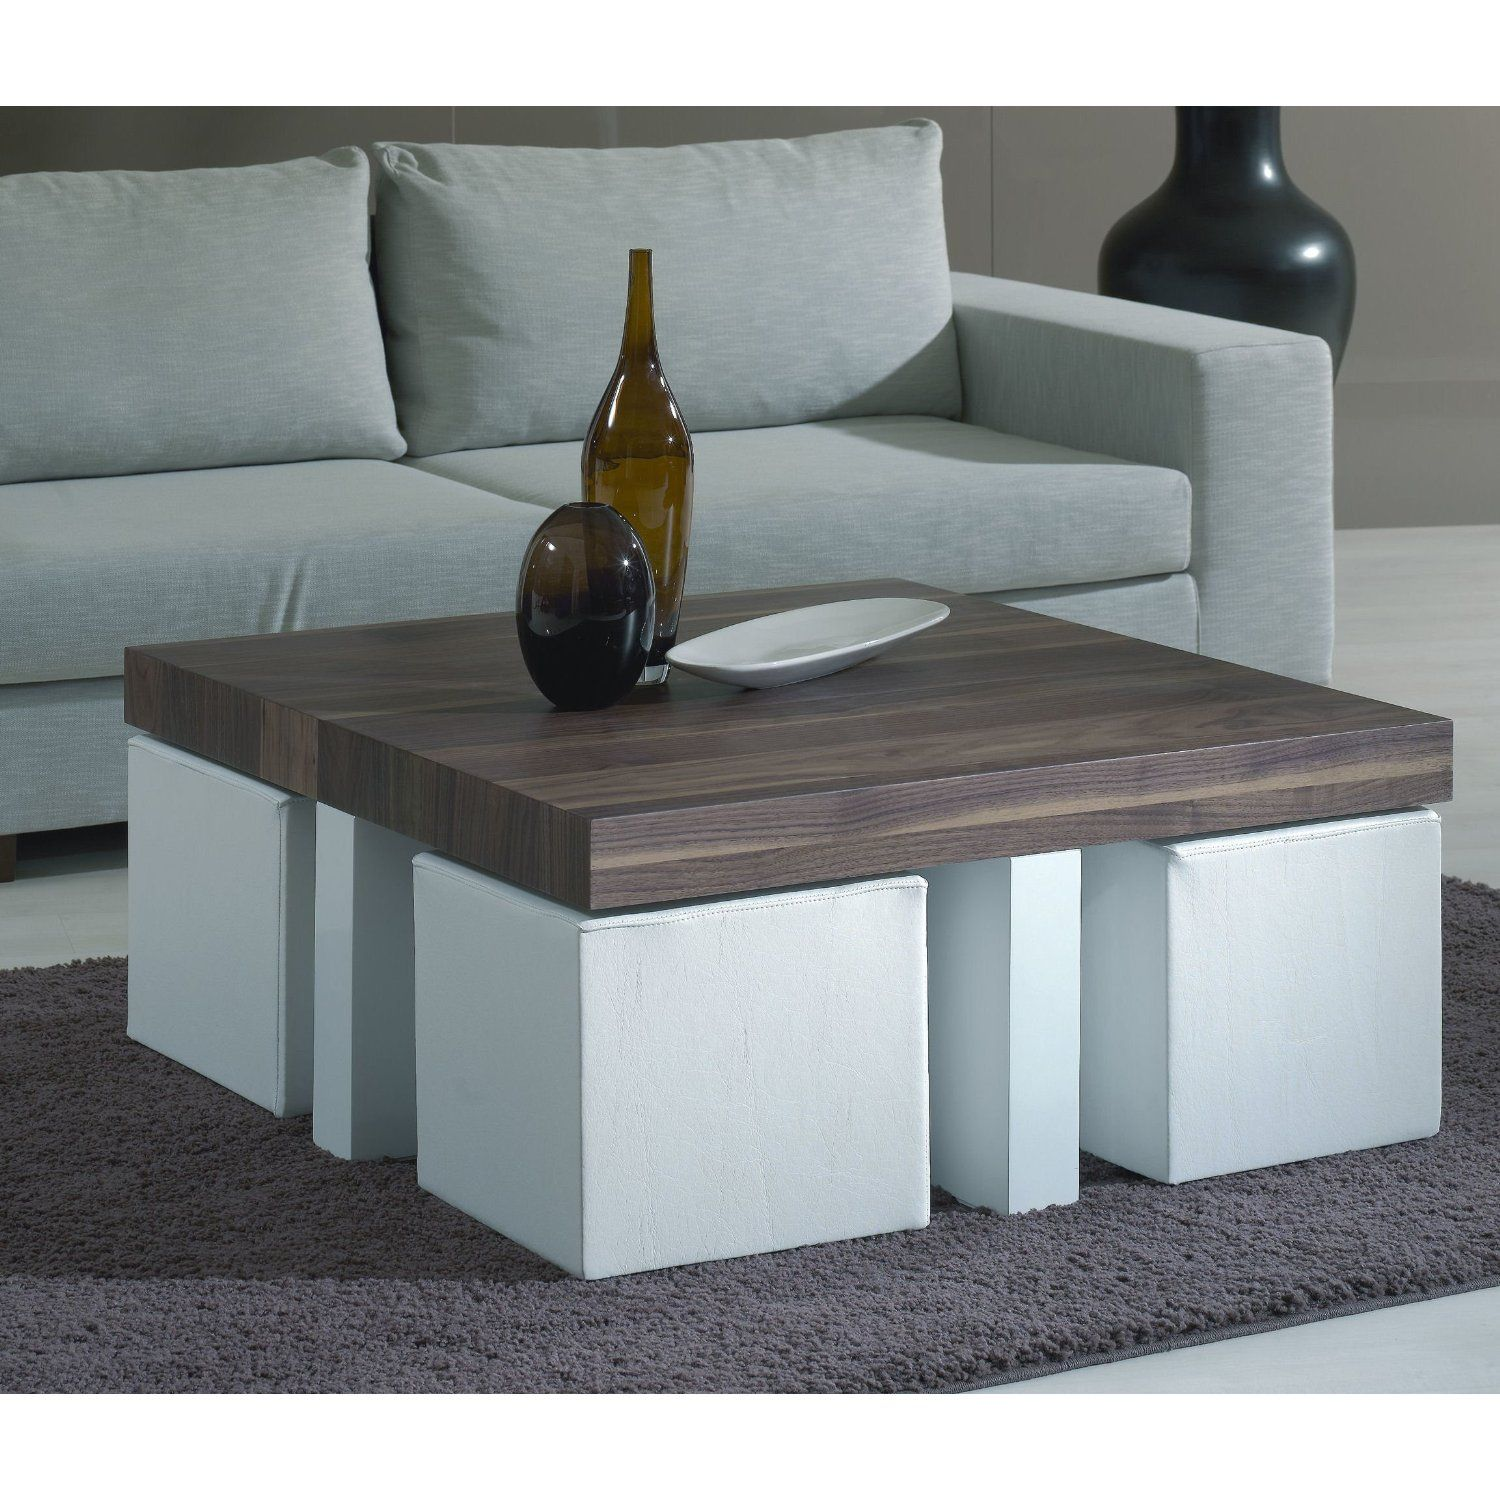 Coffee table with stools -- love this idea for stools tucked under a coffee  table - Coffee Table With Stools -- Love This Idea For Stools Tucked Under